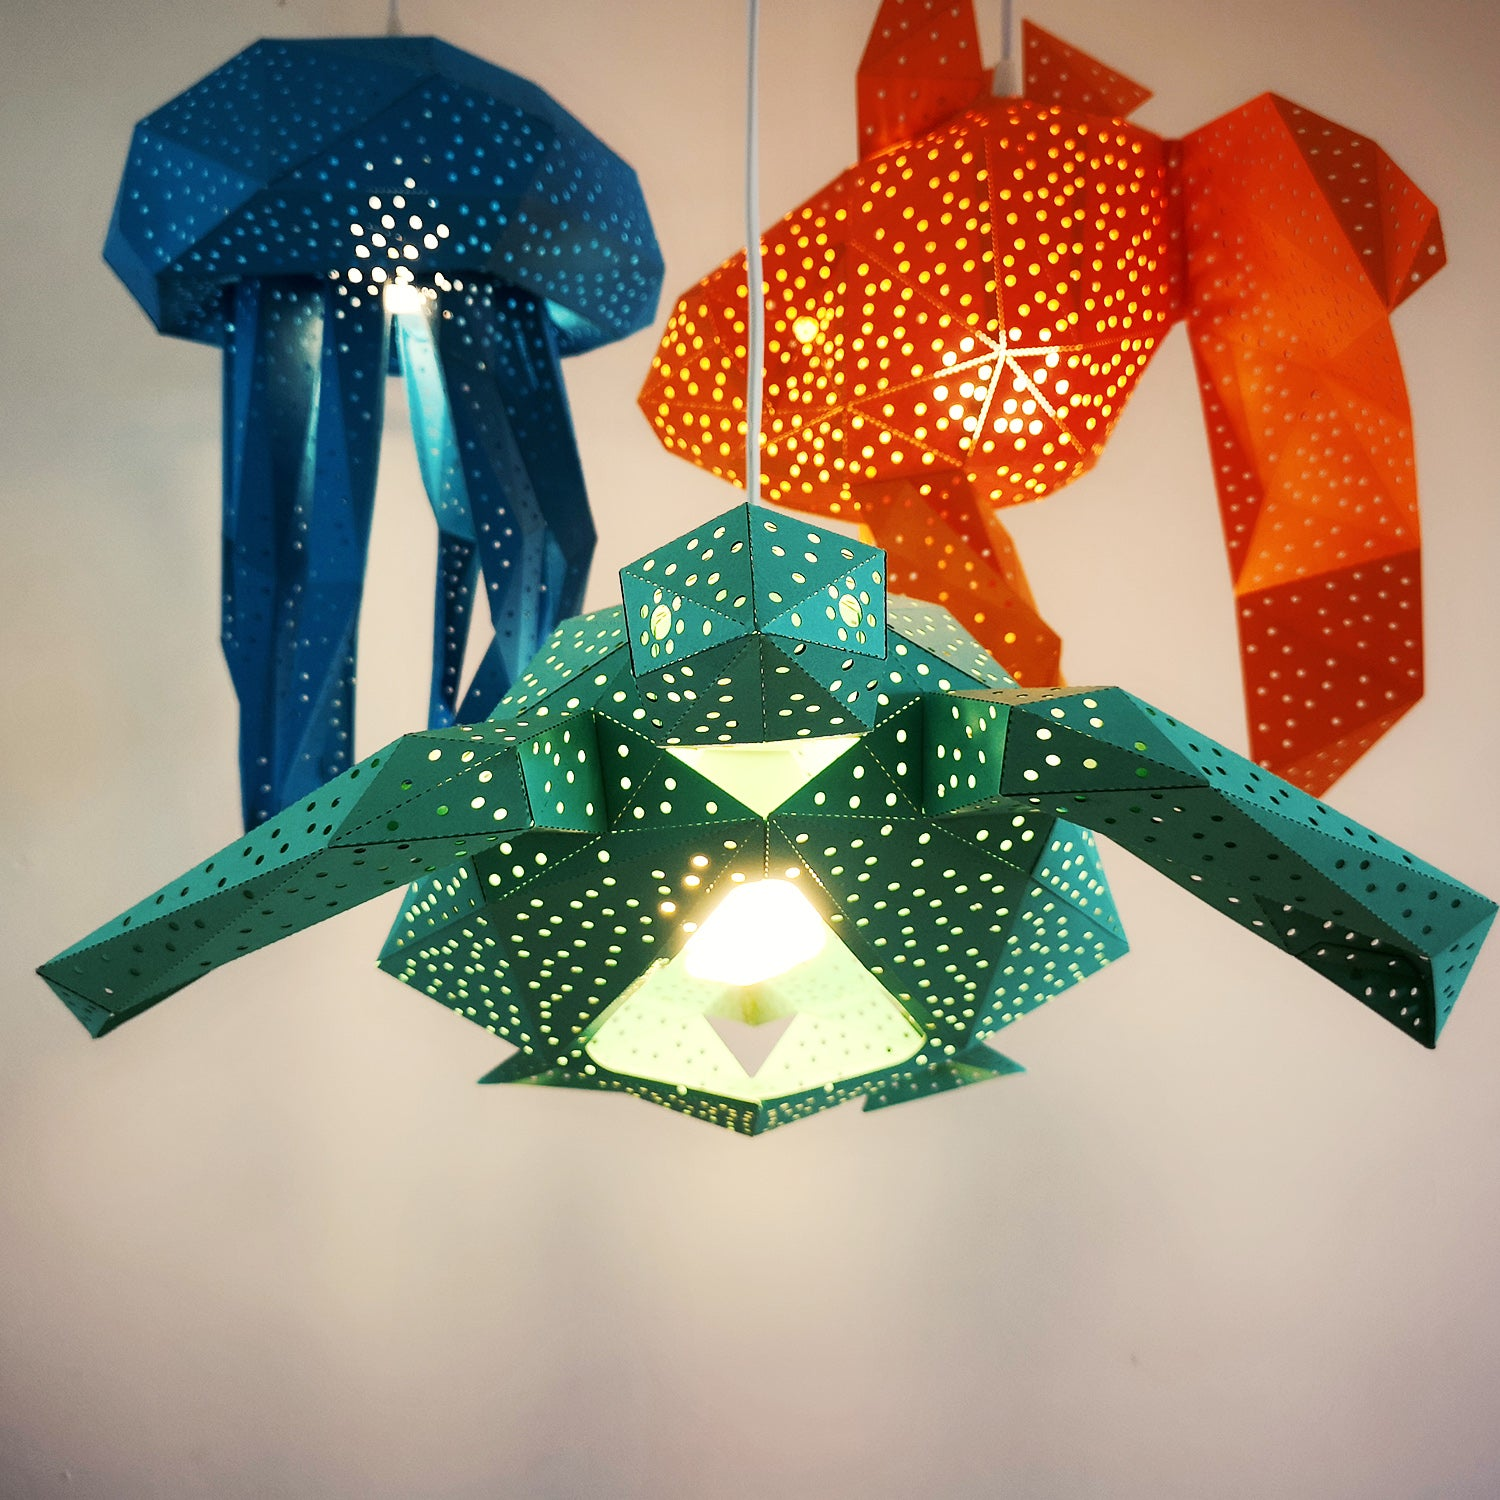 There is the green Sea Turtle lantern and orange Fish and blue Jellyfish hanging behind.